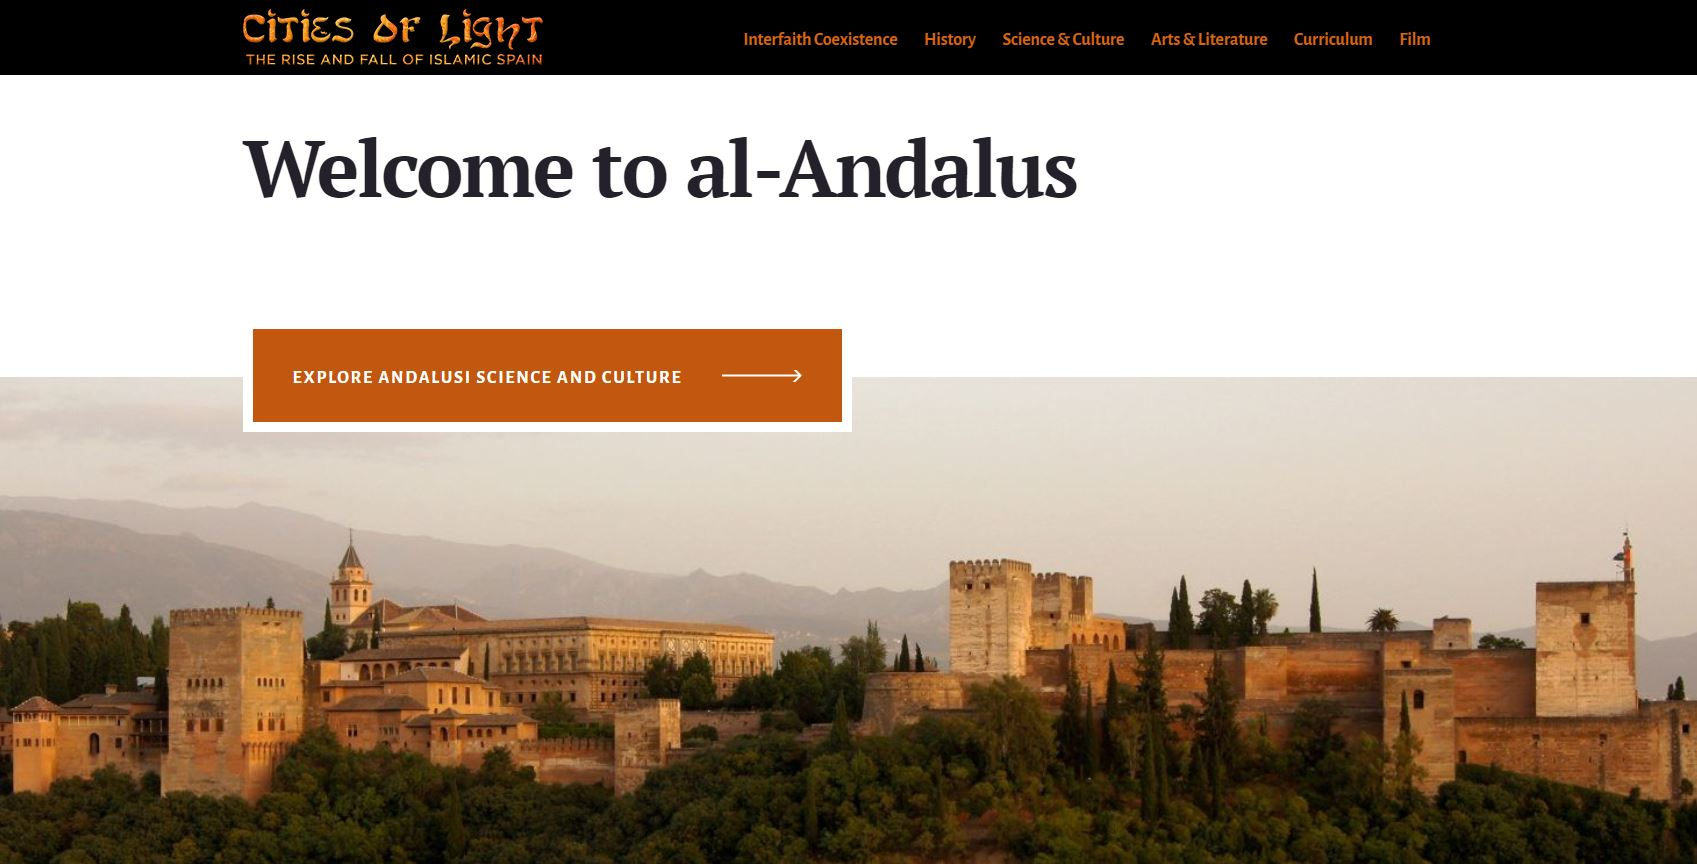 cover image of Islamic Spain website that features a panoramic view of a town in Spain